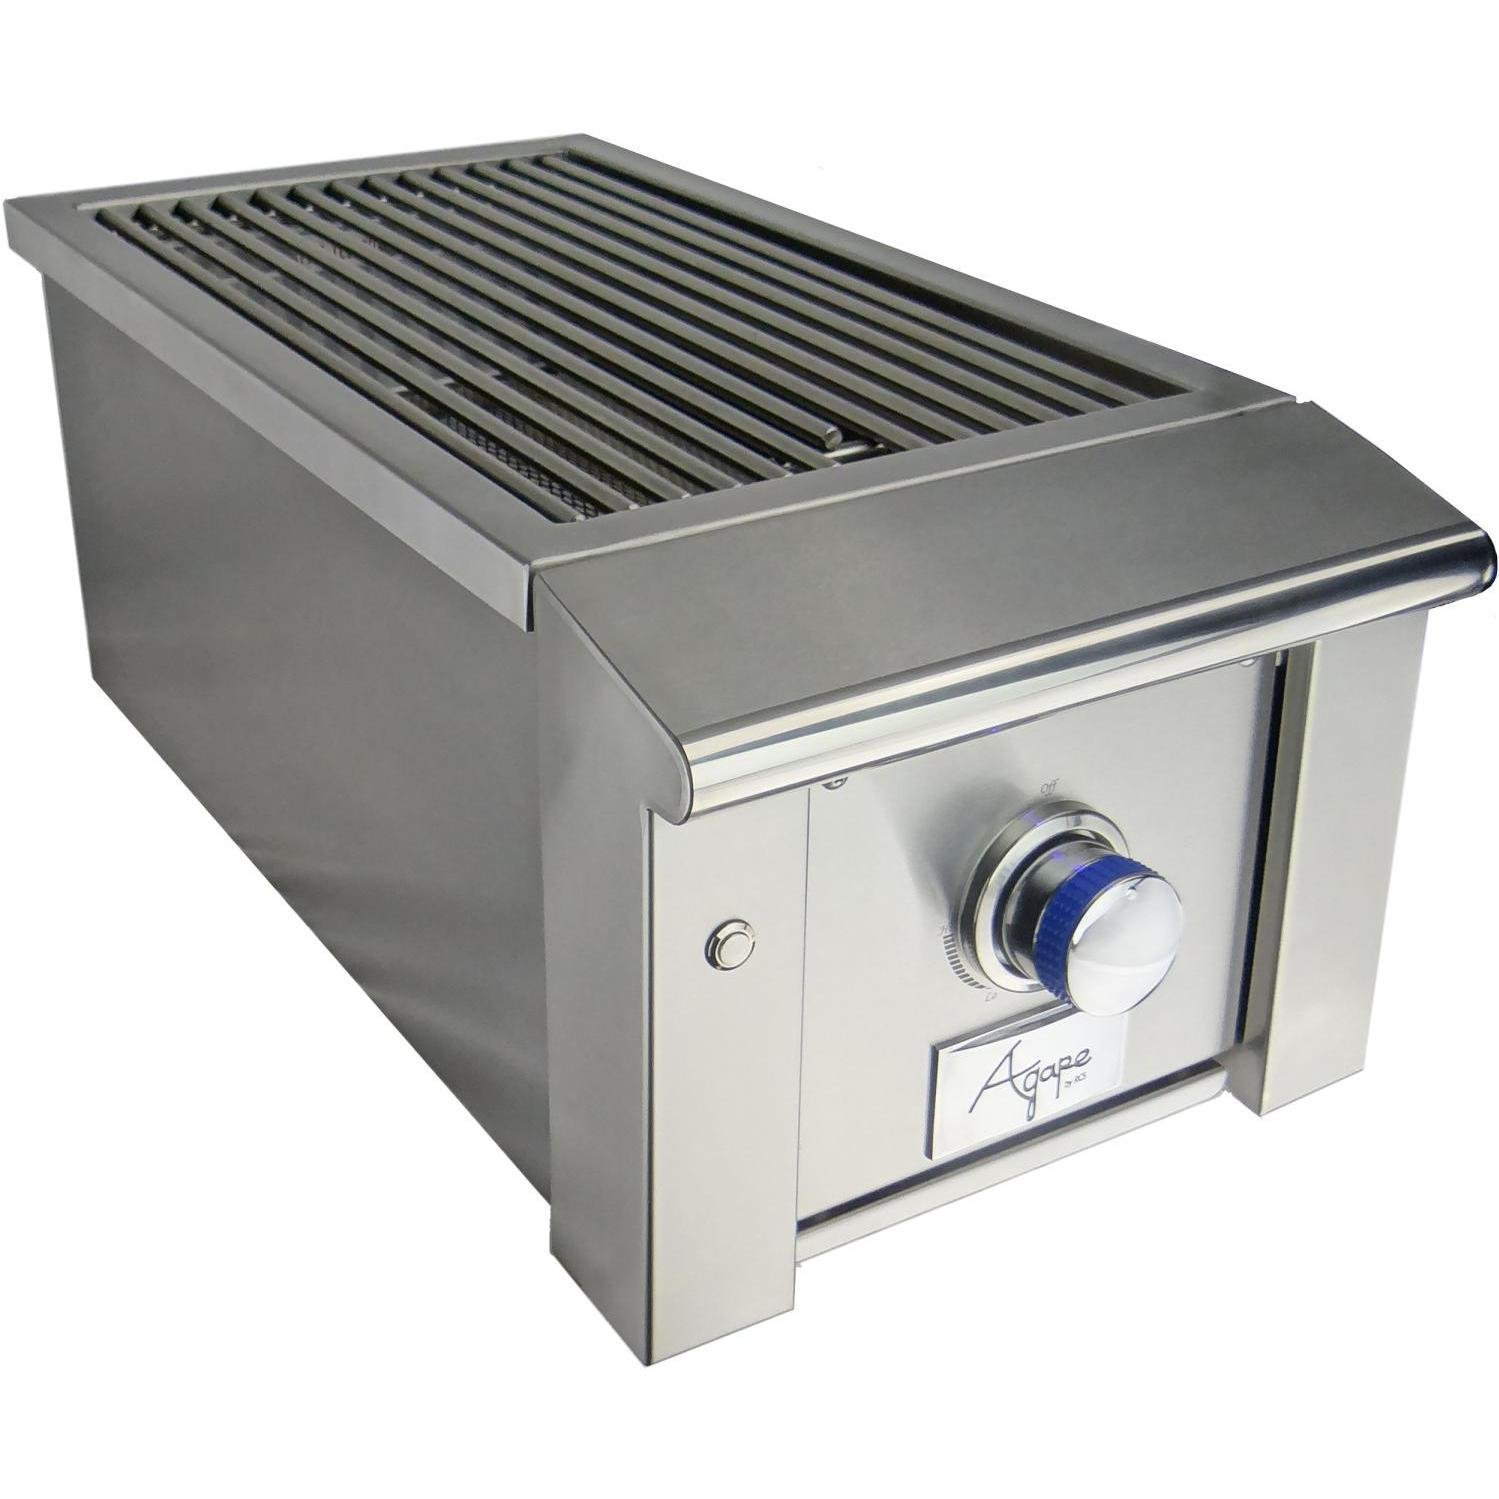 Rcs Agape Series Built-in Infrared Side Burner - Propane - Asb2